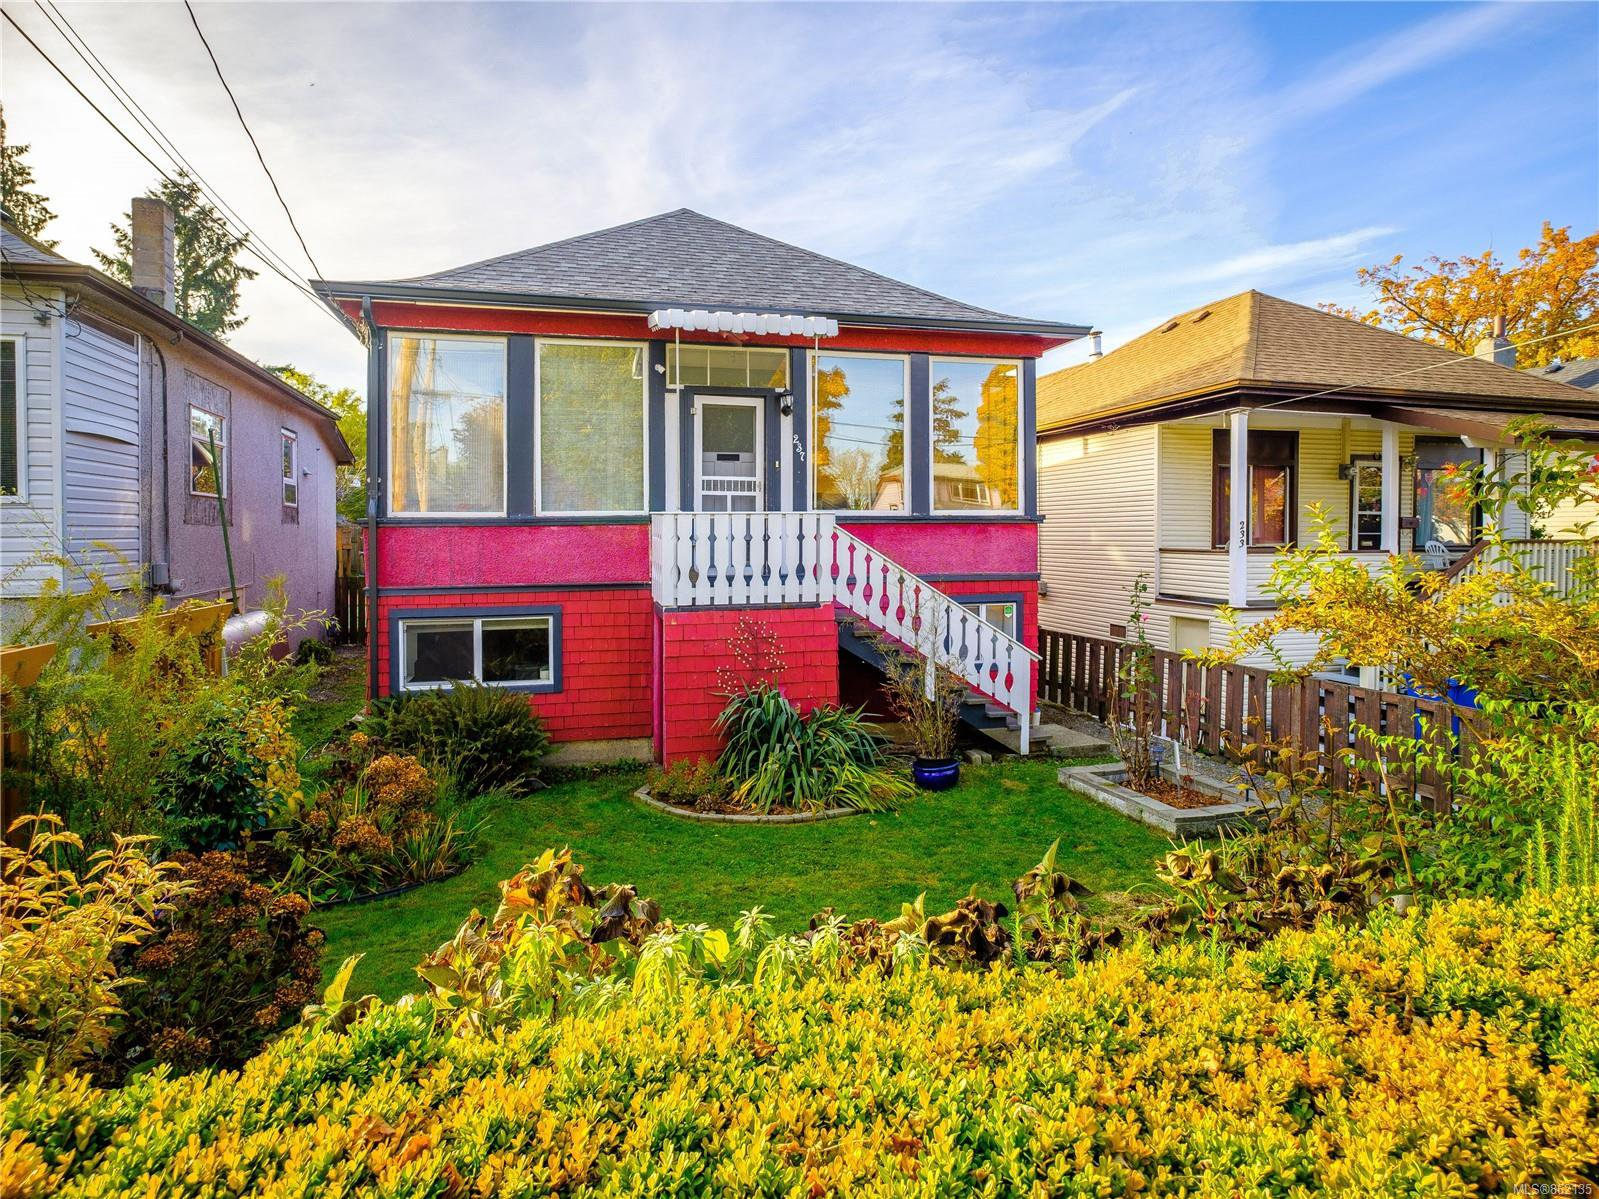 Main Photo: 237 Kennedy St in : Na Old City House for sale (Nanaimo)  : MLS®# 862135